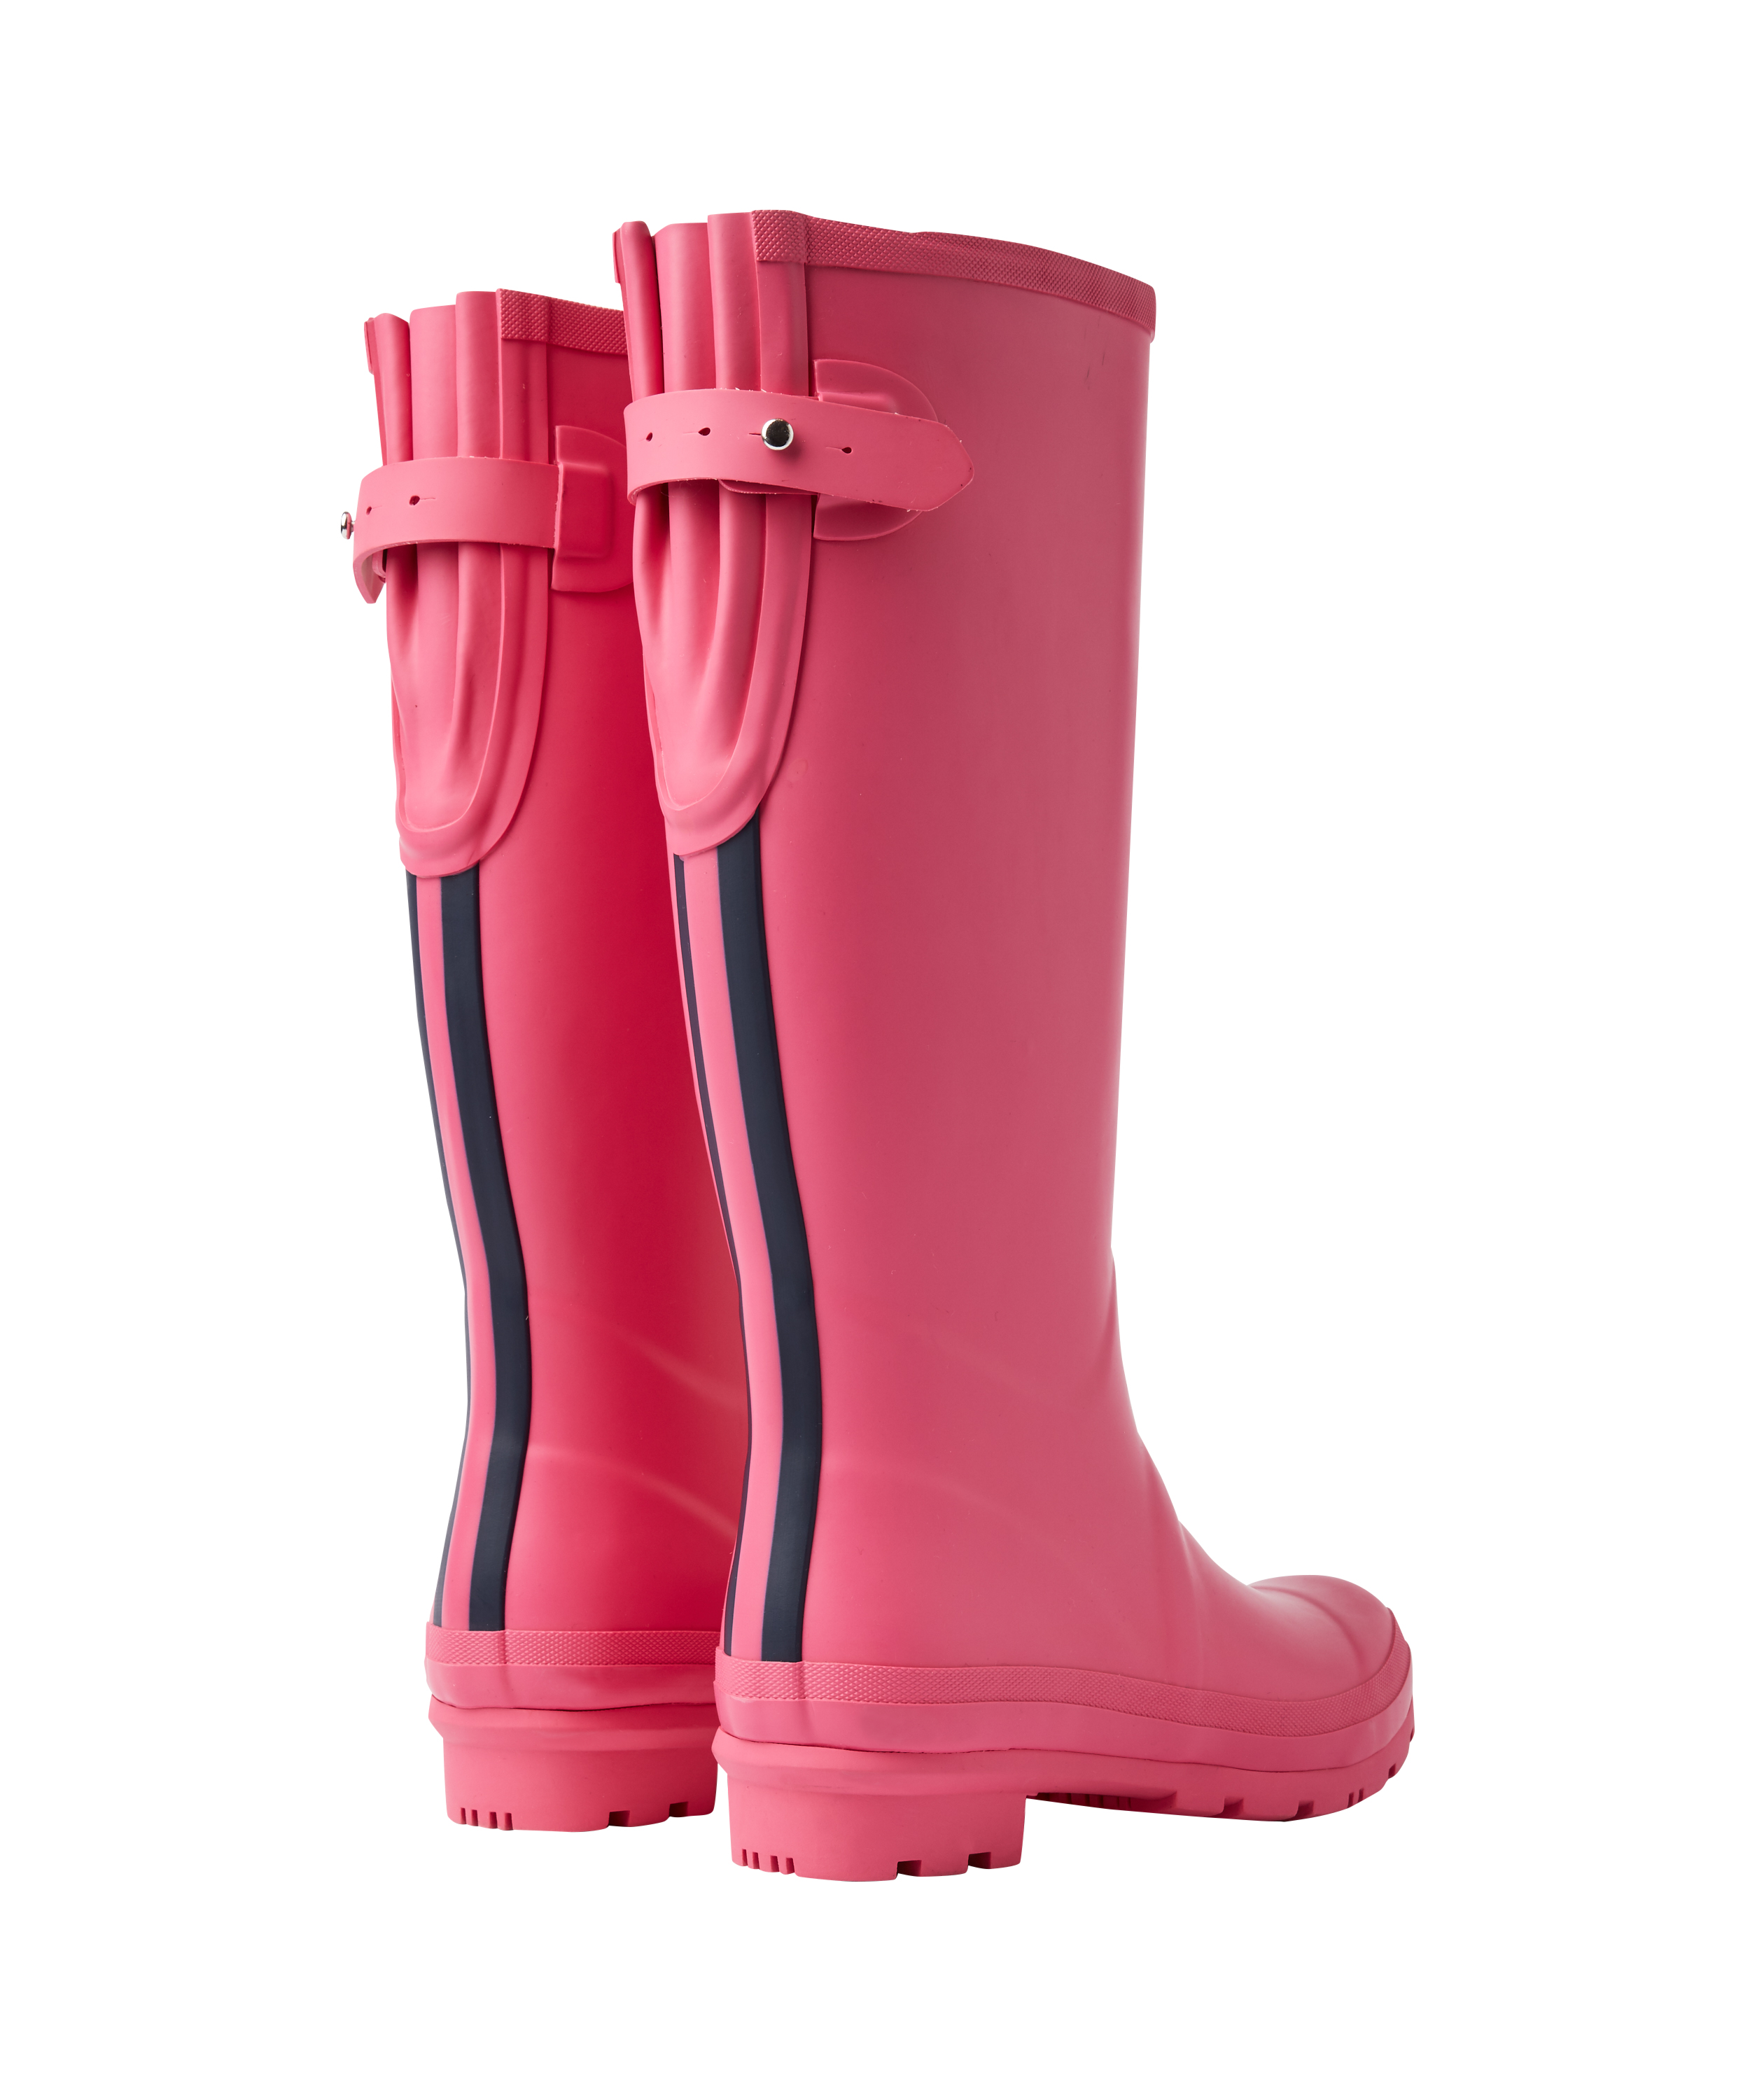 Joules-Field-Wellies-with-Adjustable-Back-Gusset-More-Colours miniature 12